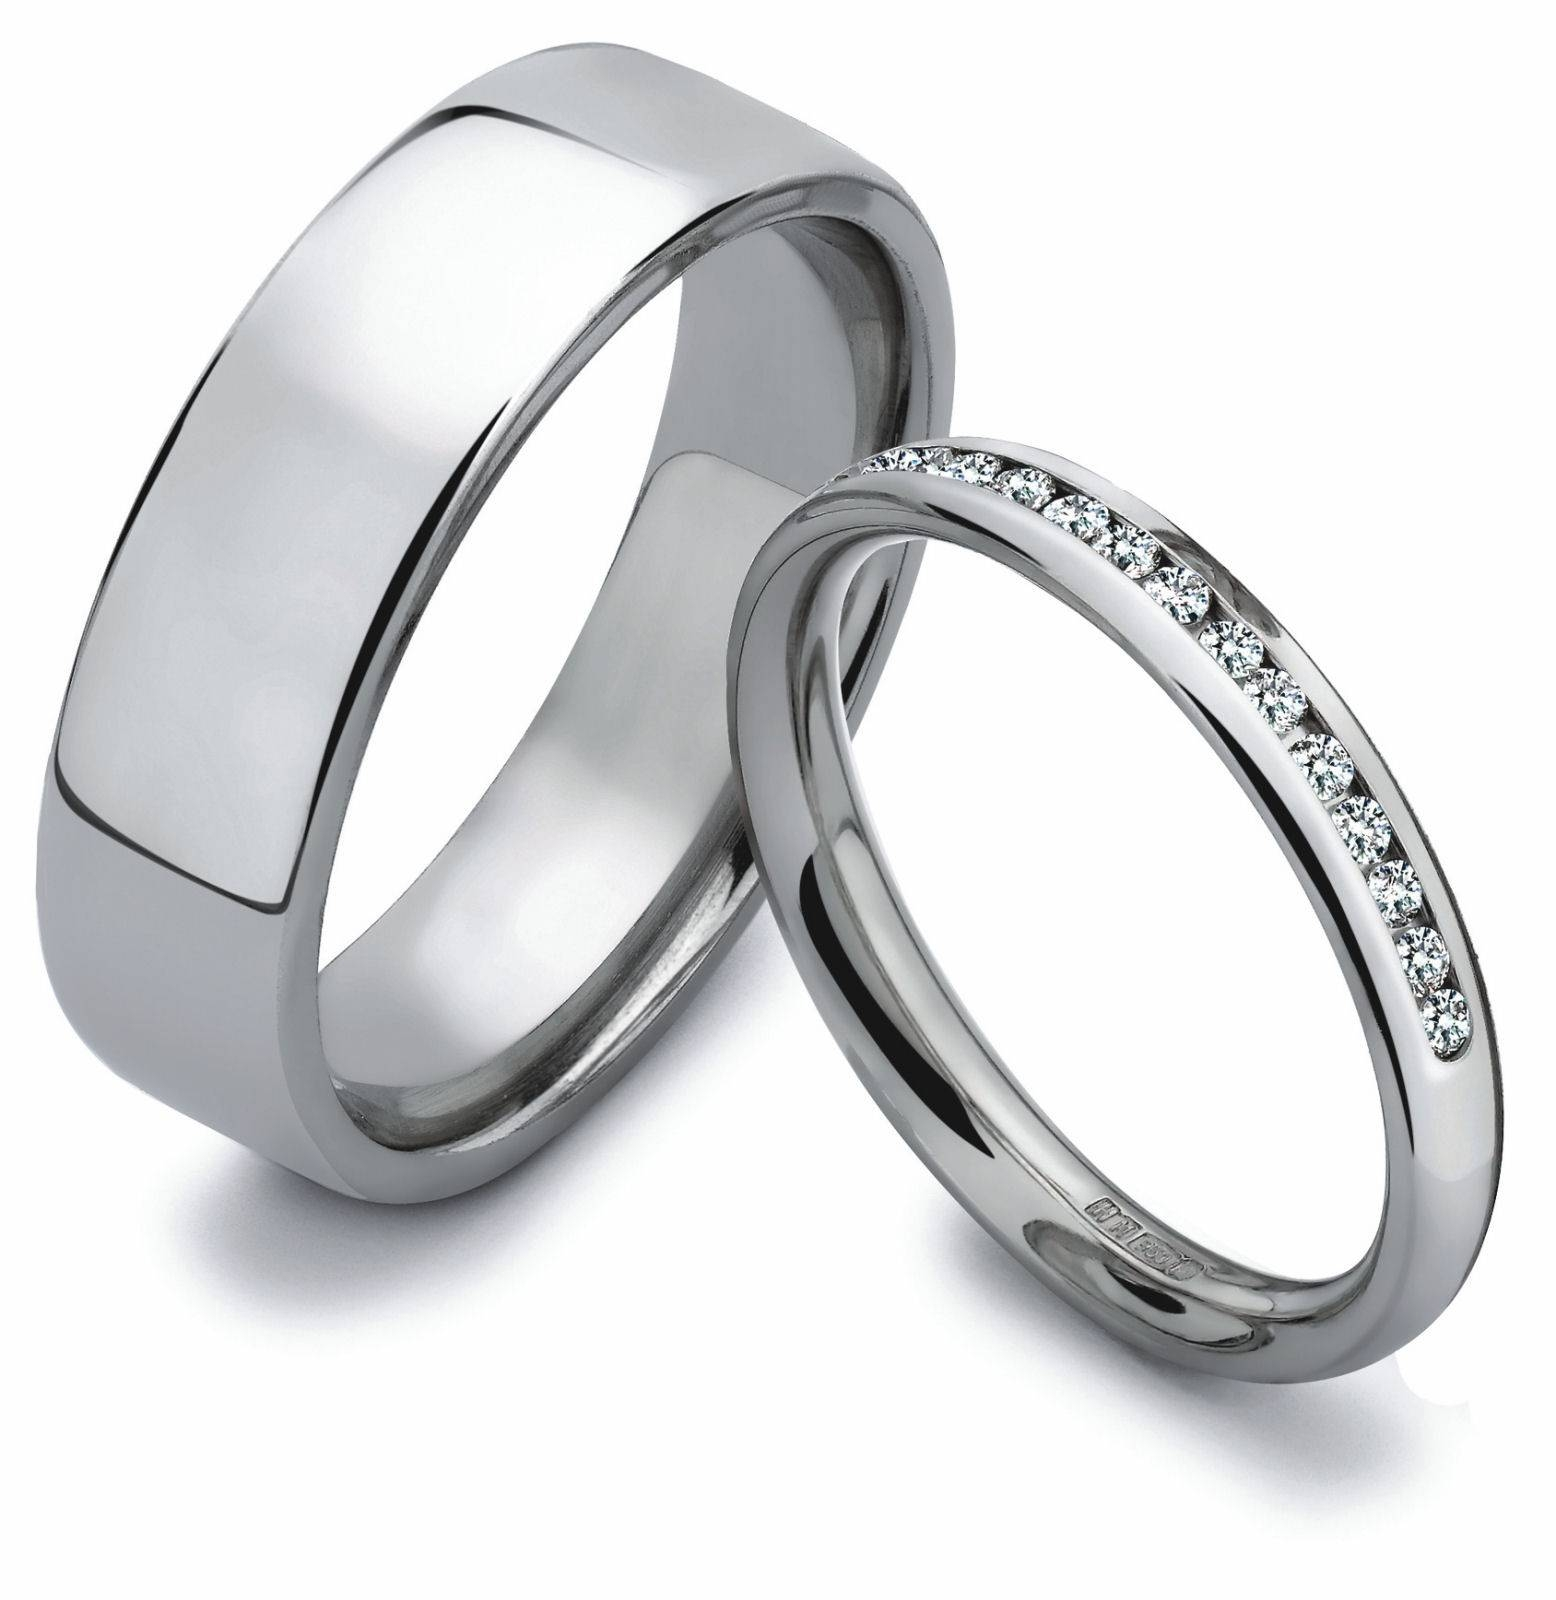 Cheap His And Hers Wedding Ring Sets | Wedding Ideas Inside Wedding Bands Sets For Him And Her (View 4 of 15)